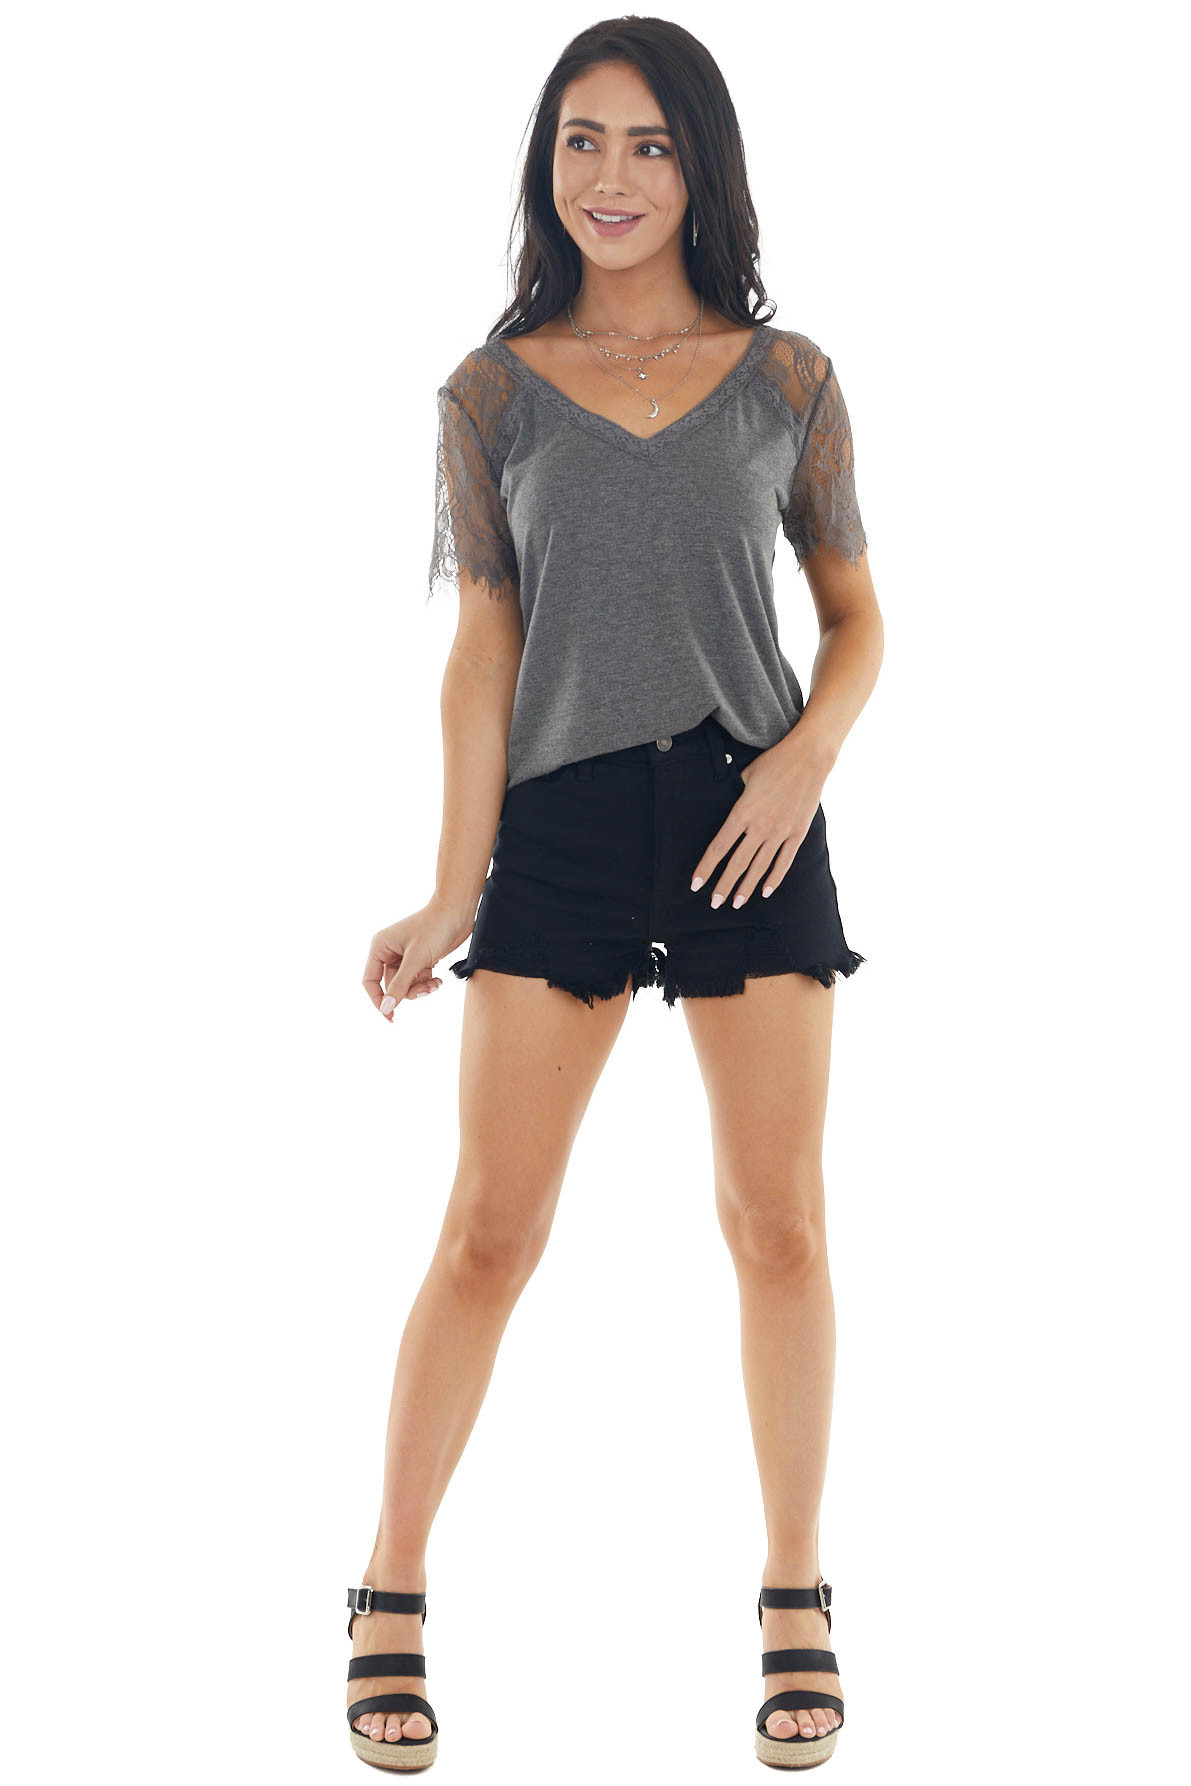 Graphite Short Sleeve V Neck Knit Top with Lace Details